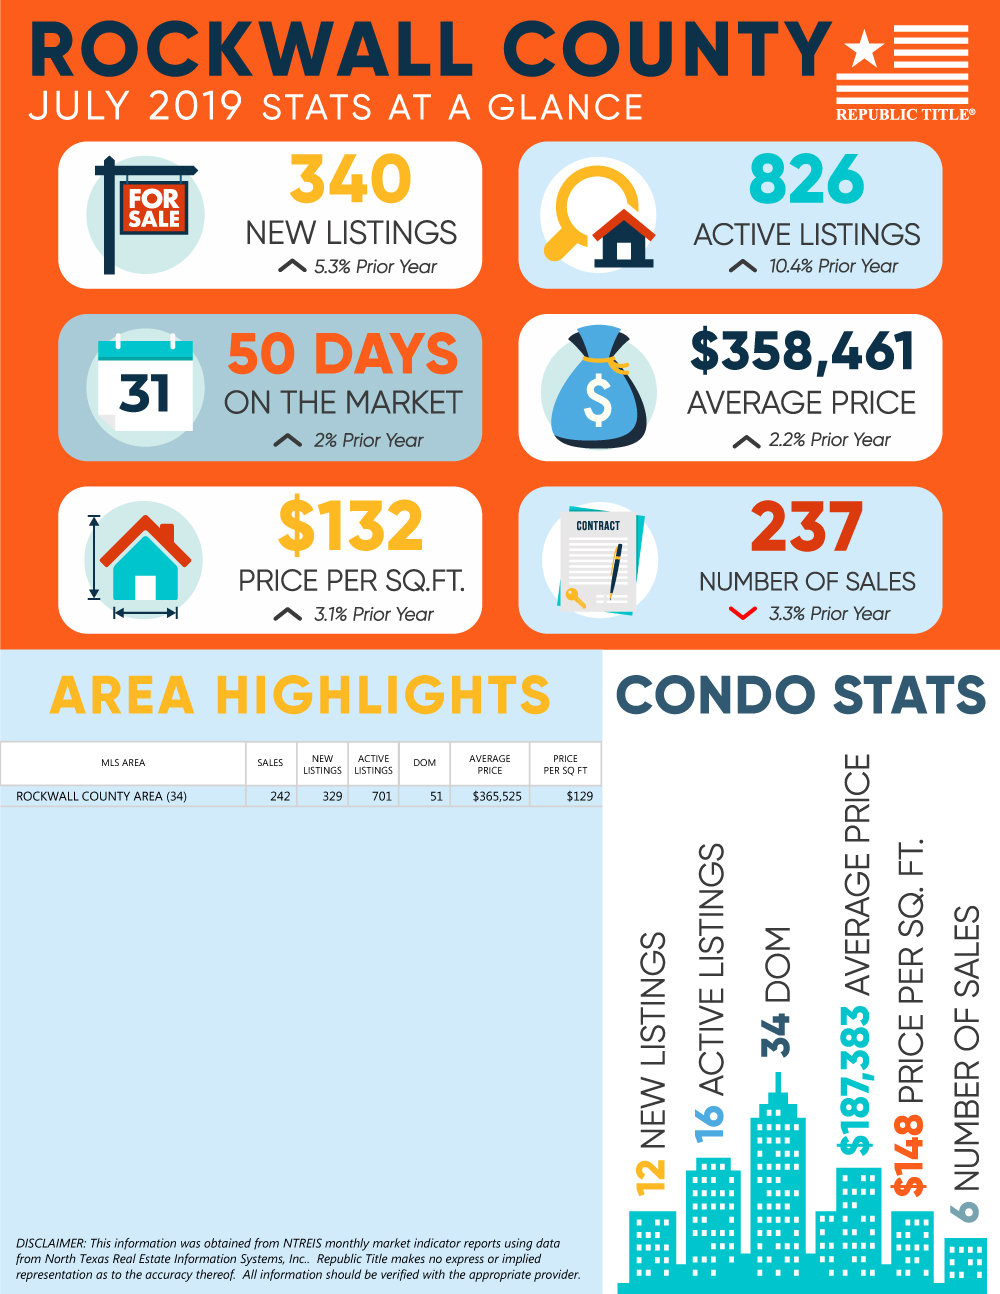 Rockwall County, TX Housing Market Update - July 2019 Home & Condo Stats